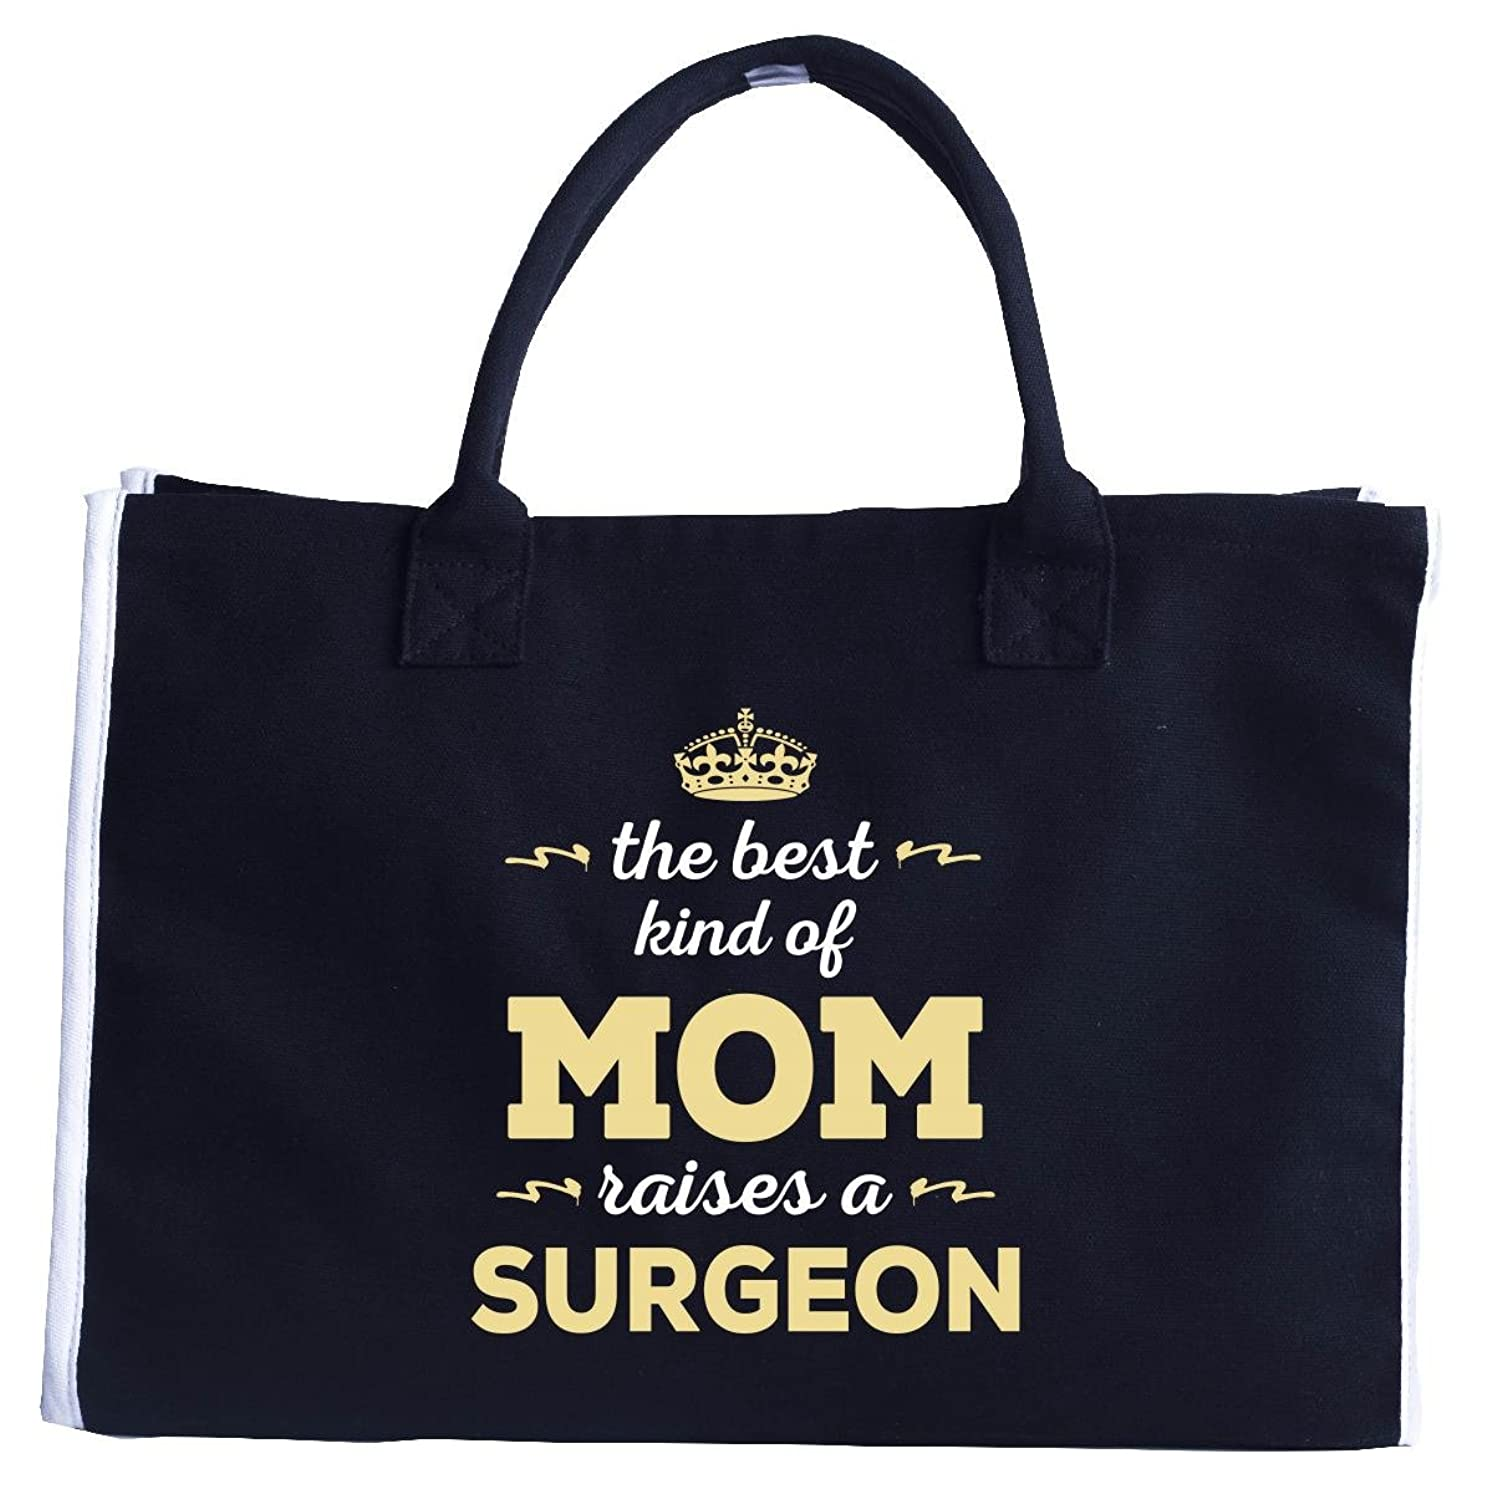 The Best Kind Of Mom Raises A Surgeon. Gift For Mom - Fashion Tote Bag